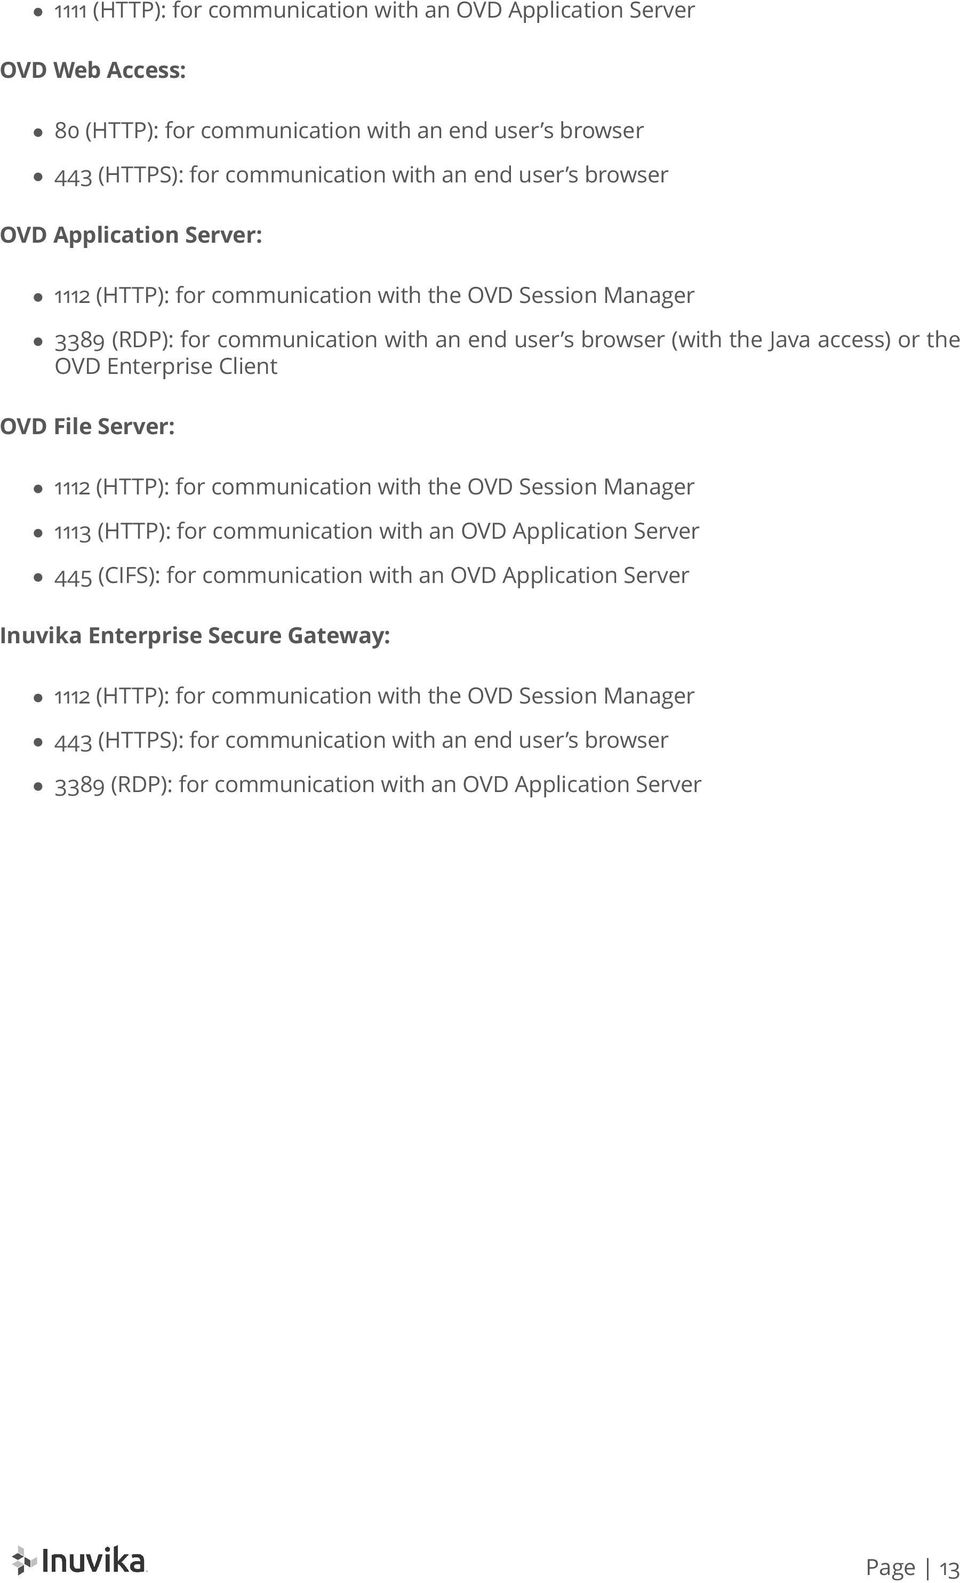 Server: 1112 (HTTP): for communication with the OVD Session Manager 1113 (HTTP): for communication with an OVD Application Server 445 (CIFS): for communication with an OVD Application Server Inuvika